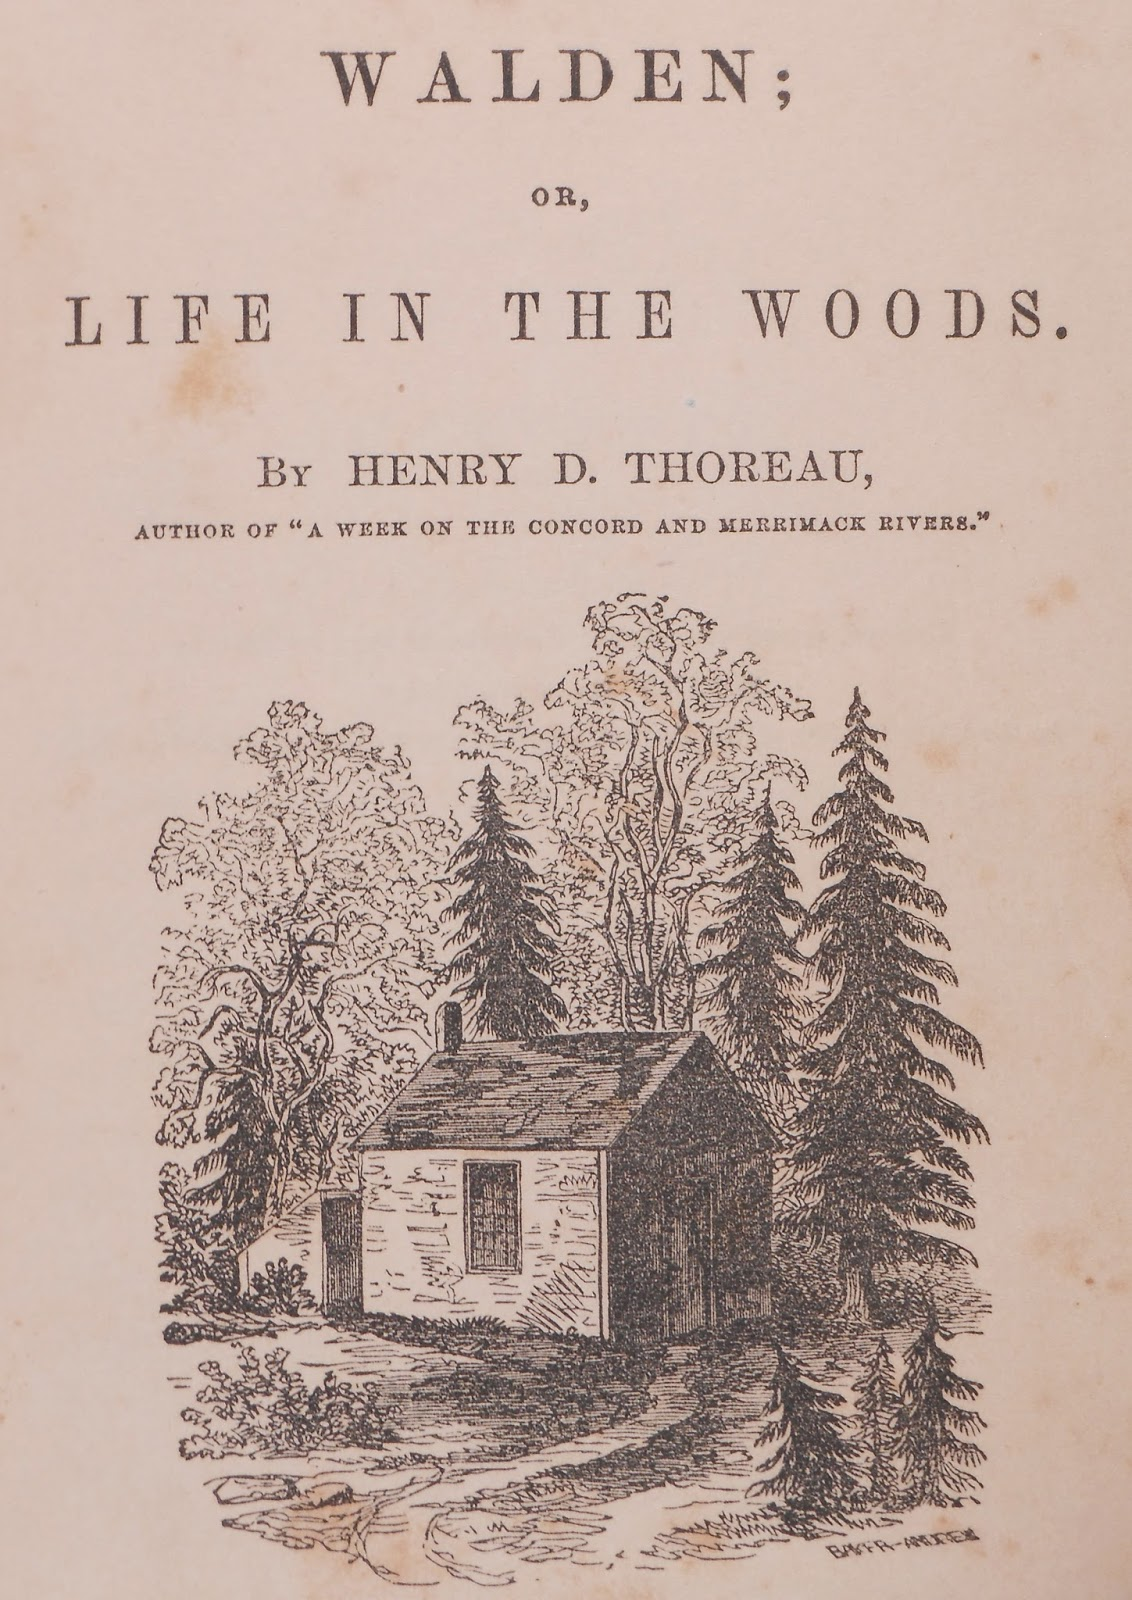 henry davis thoreaus life around the concord Henry david thoreau learn with or life in the woods, walden and civil disobedience, from that if you simplify your life, the world around you will seem.